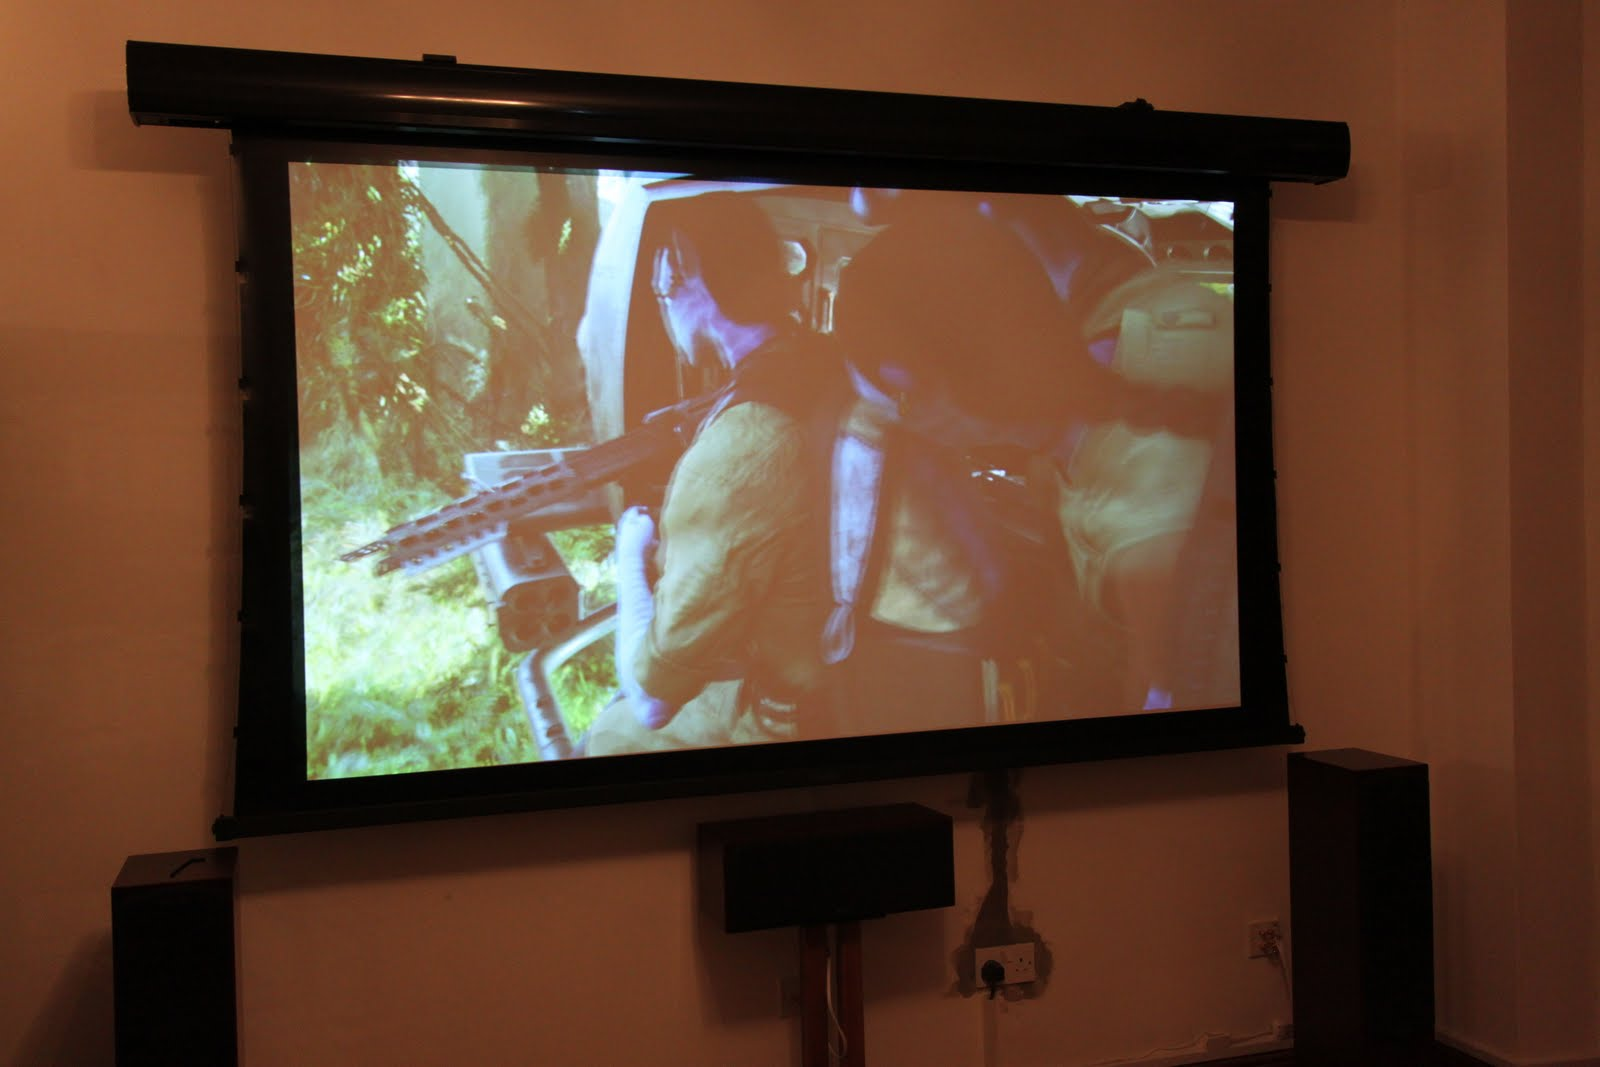 medium resolution of epson 5500 full hd projector a 15m hdmi cable was chased into the wall to the wall mounted projector the home theater was then setup and calibrated